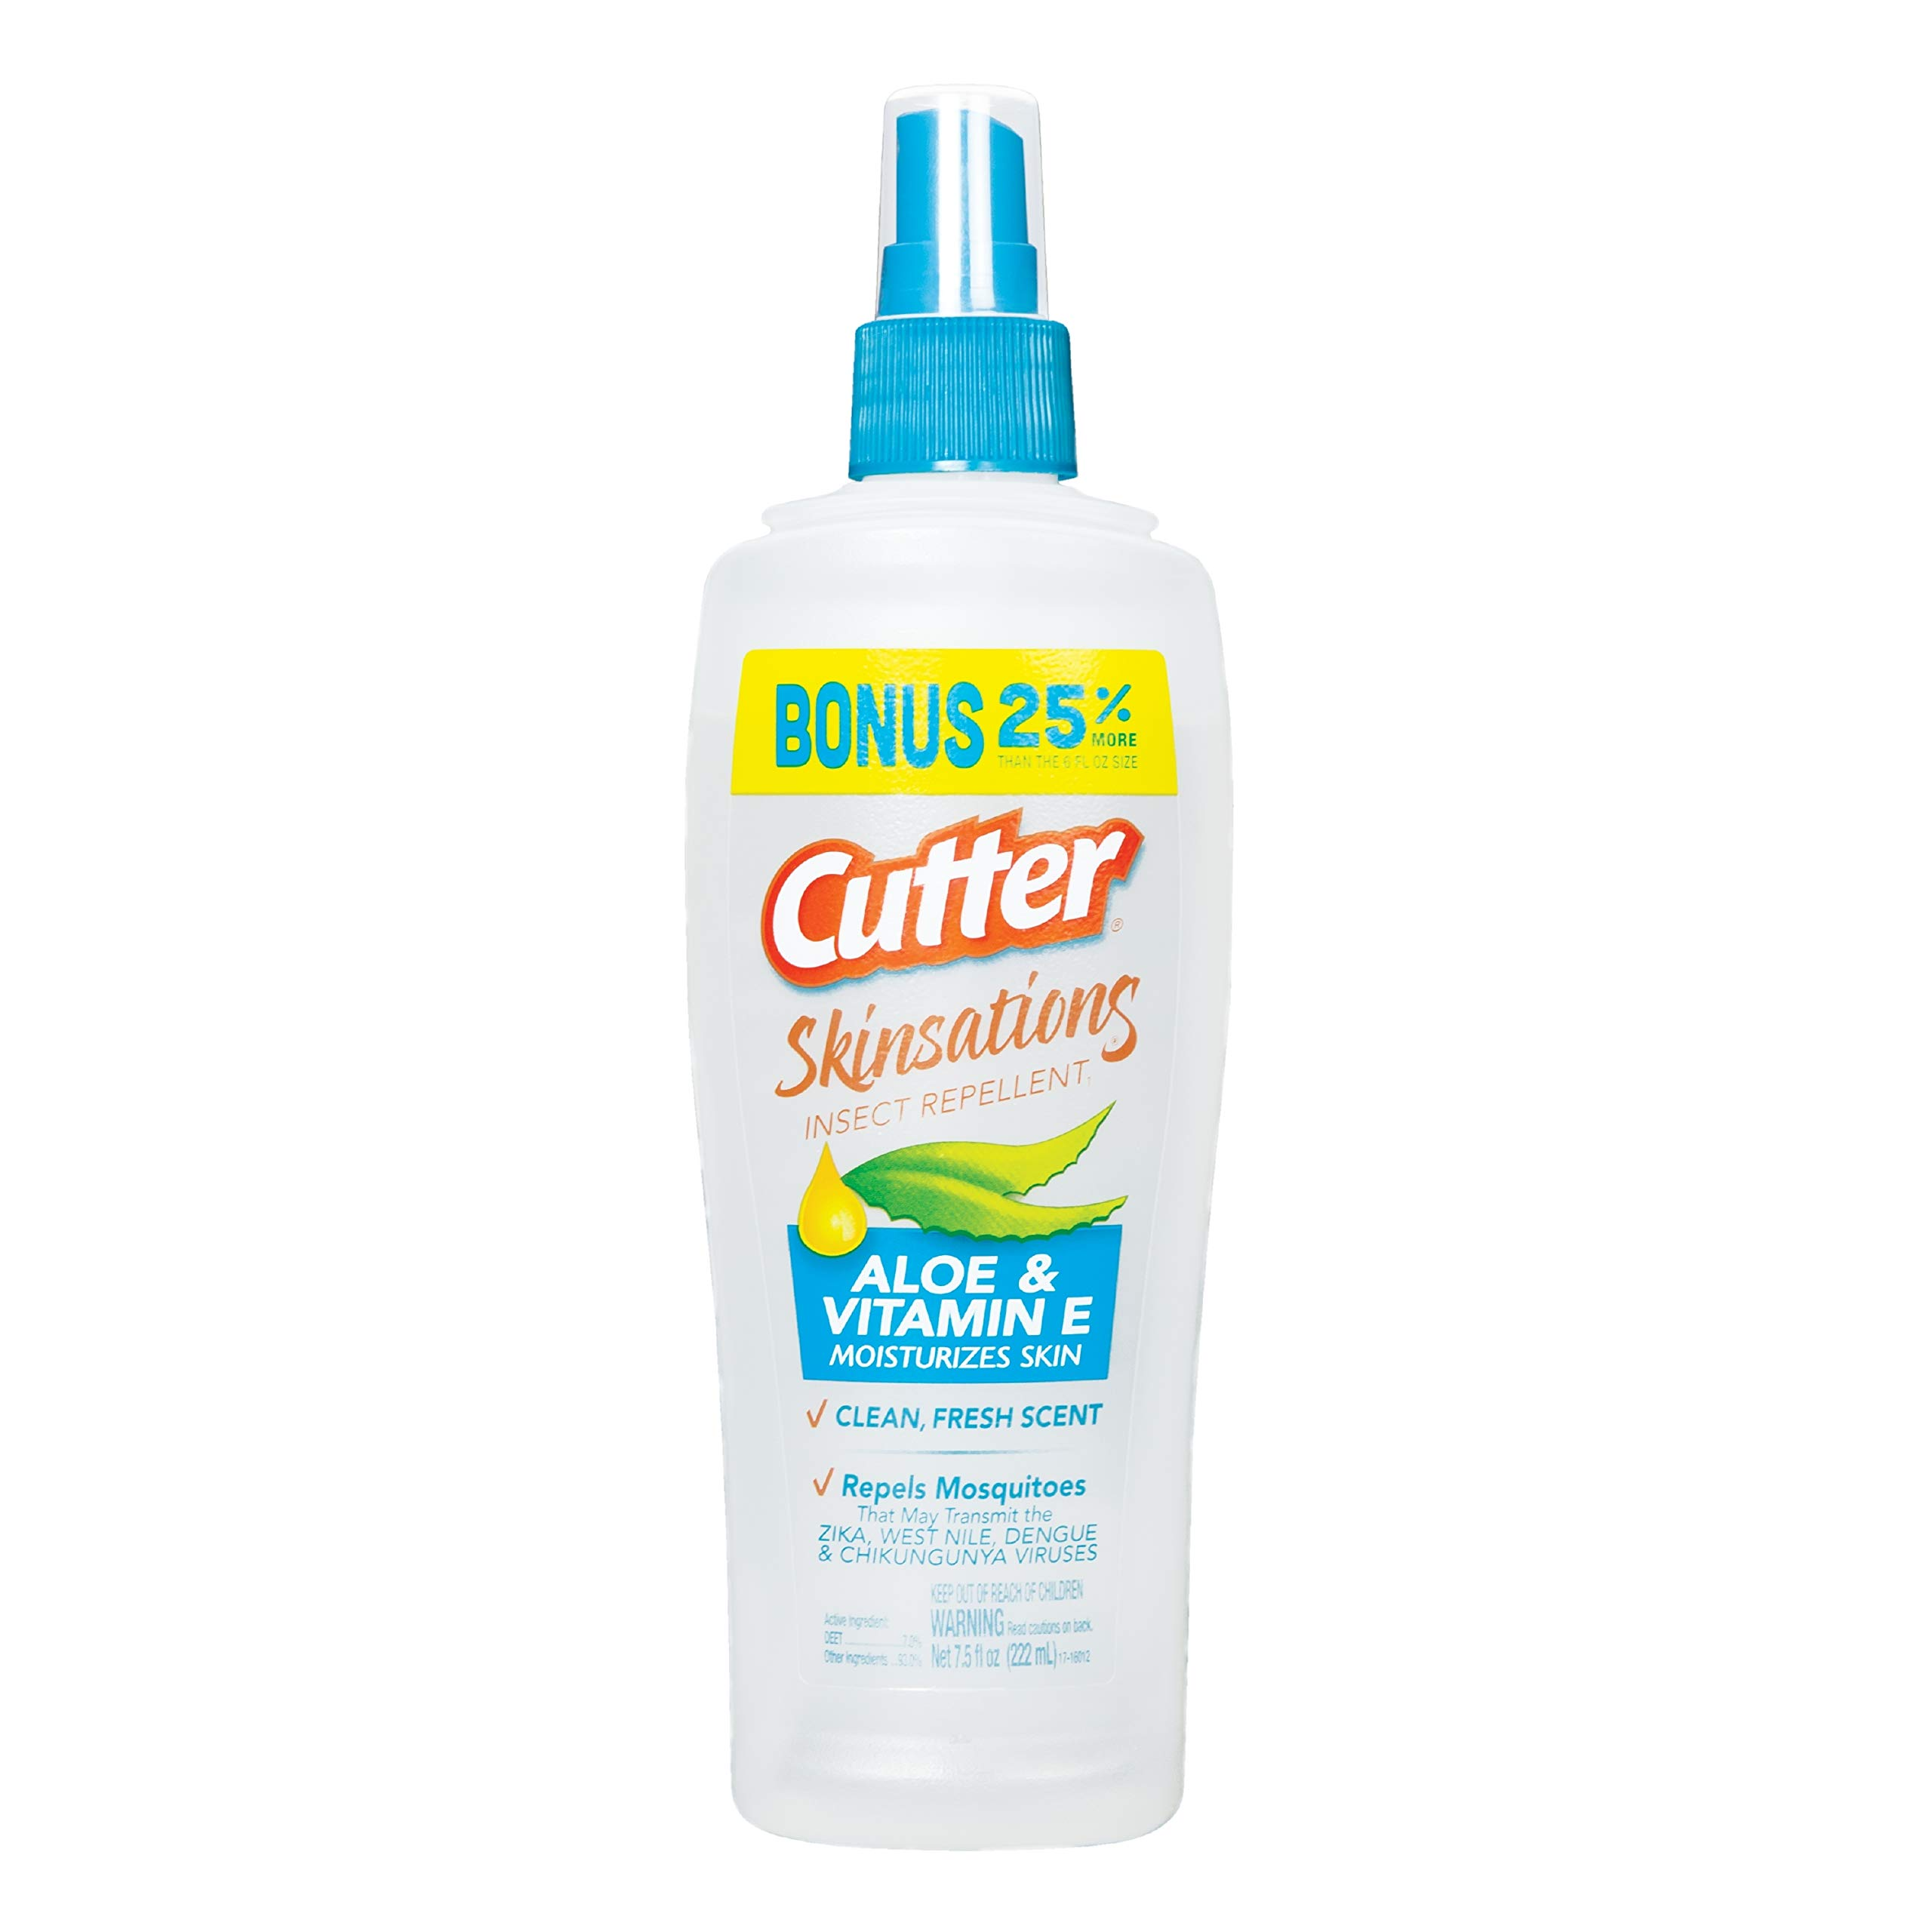 Cutter Skinsations Insect Repellent, Pump Spray, 6-Ounce, 12-Pack by Cutter